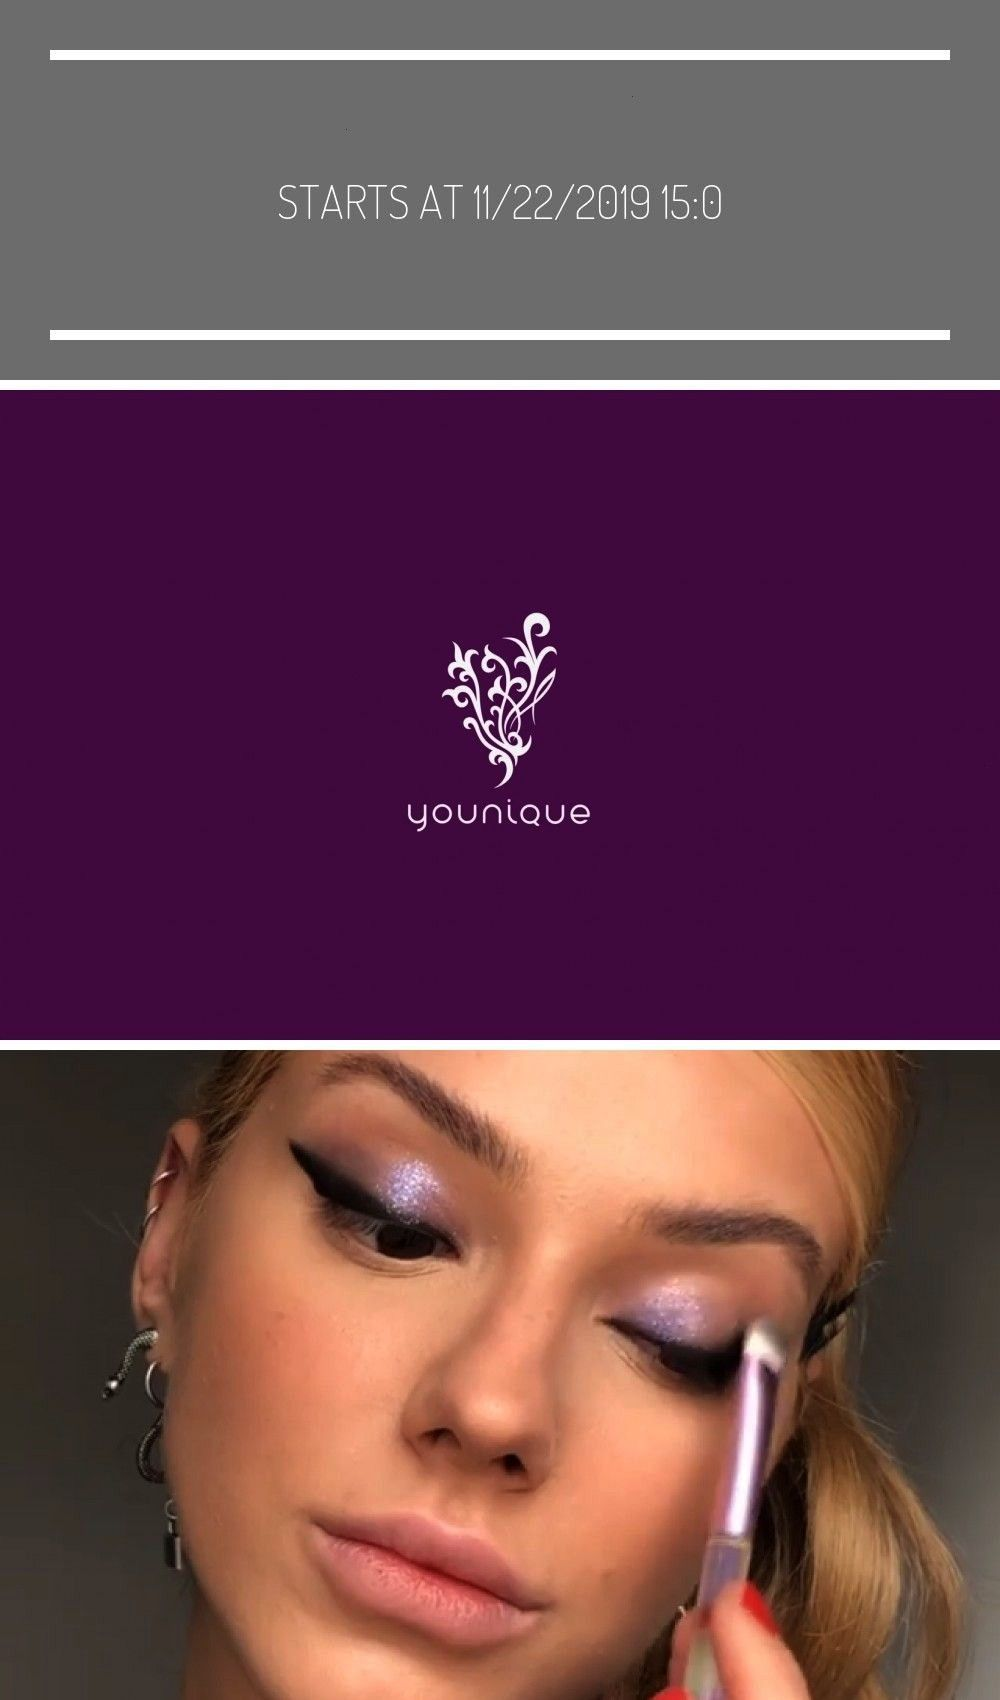 at 11/22/2019 15:00 MEZ makeup videos Crazy Purple Week Holiday PromotionStarts at 11/22/2019 15:00